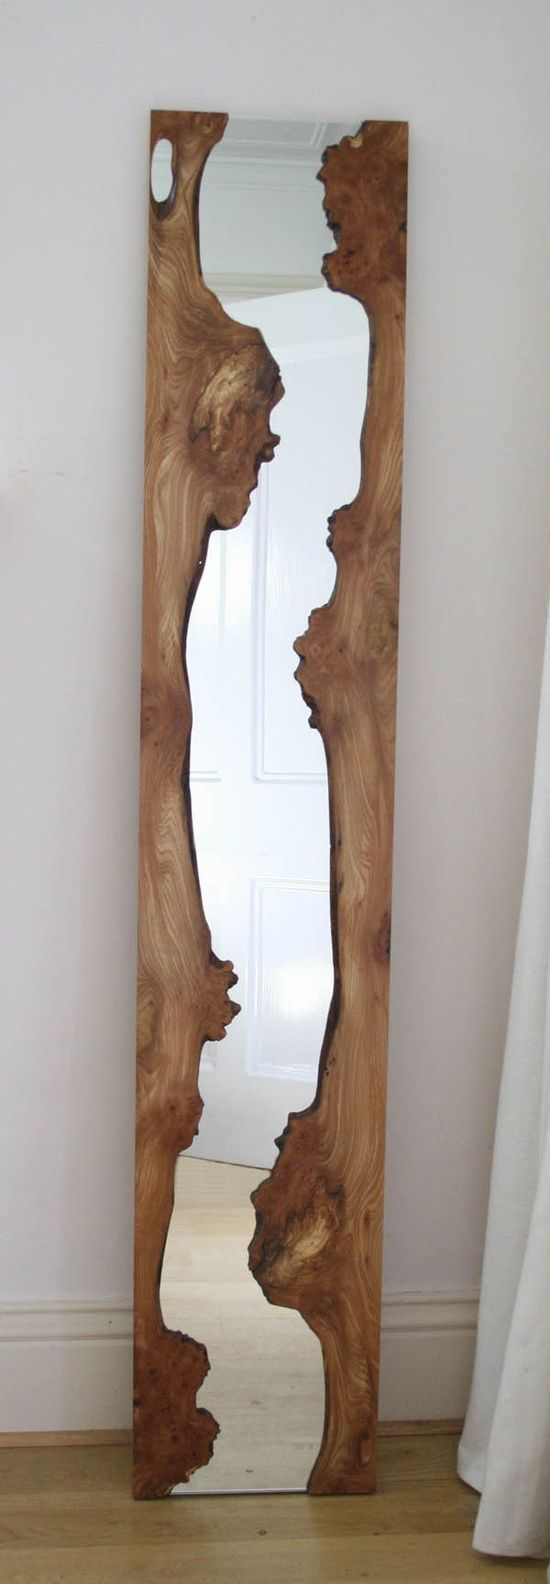 gorgeous wood mirror. Live edges and modern rustic appeal!